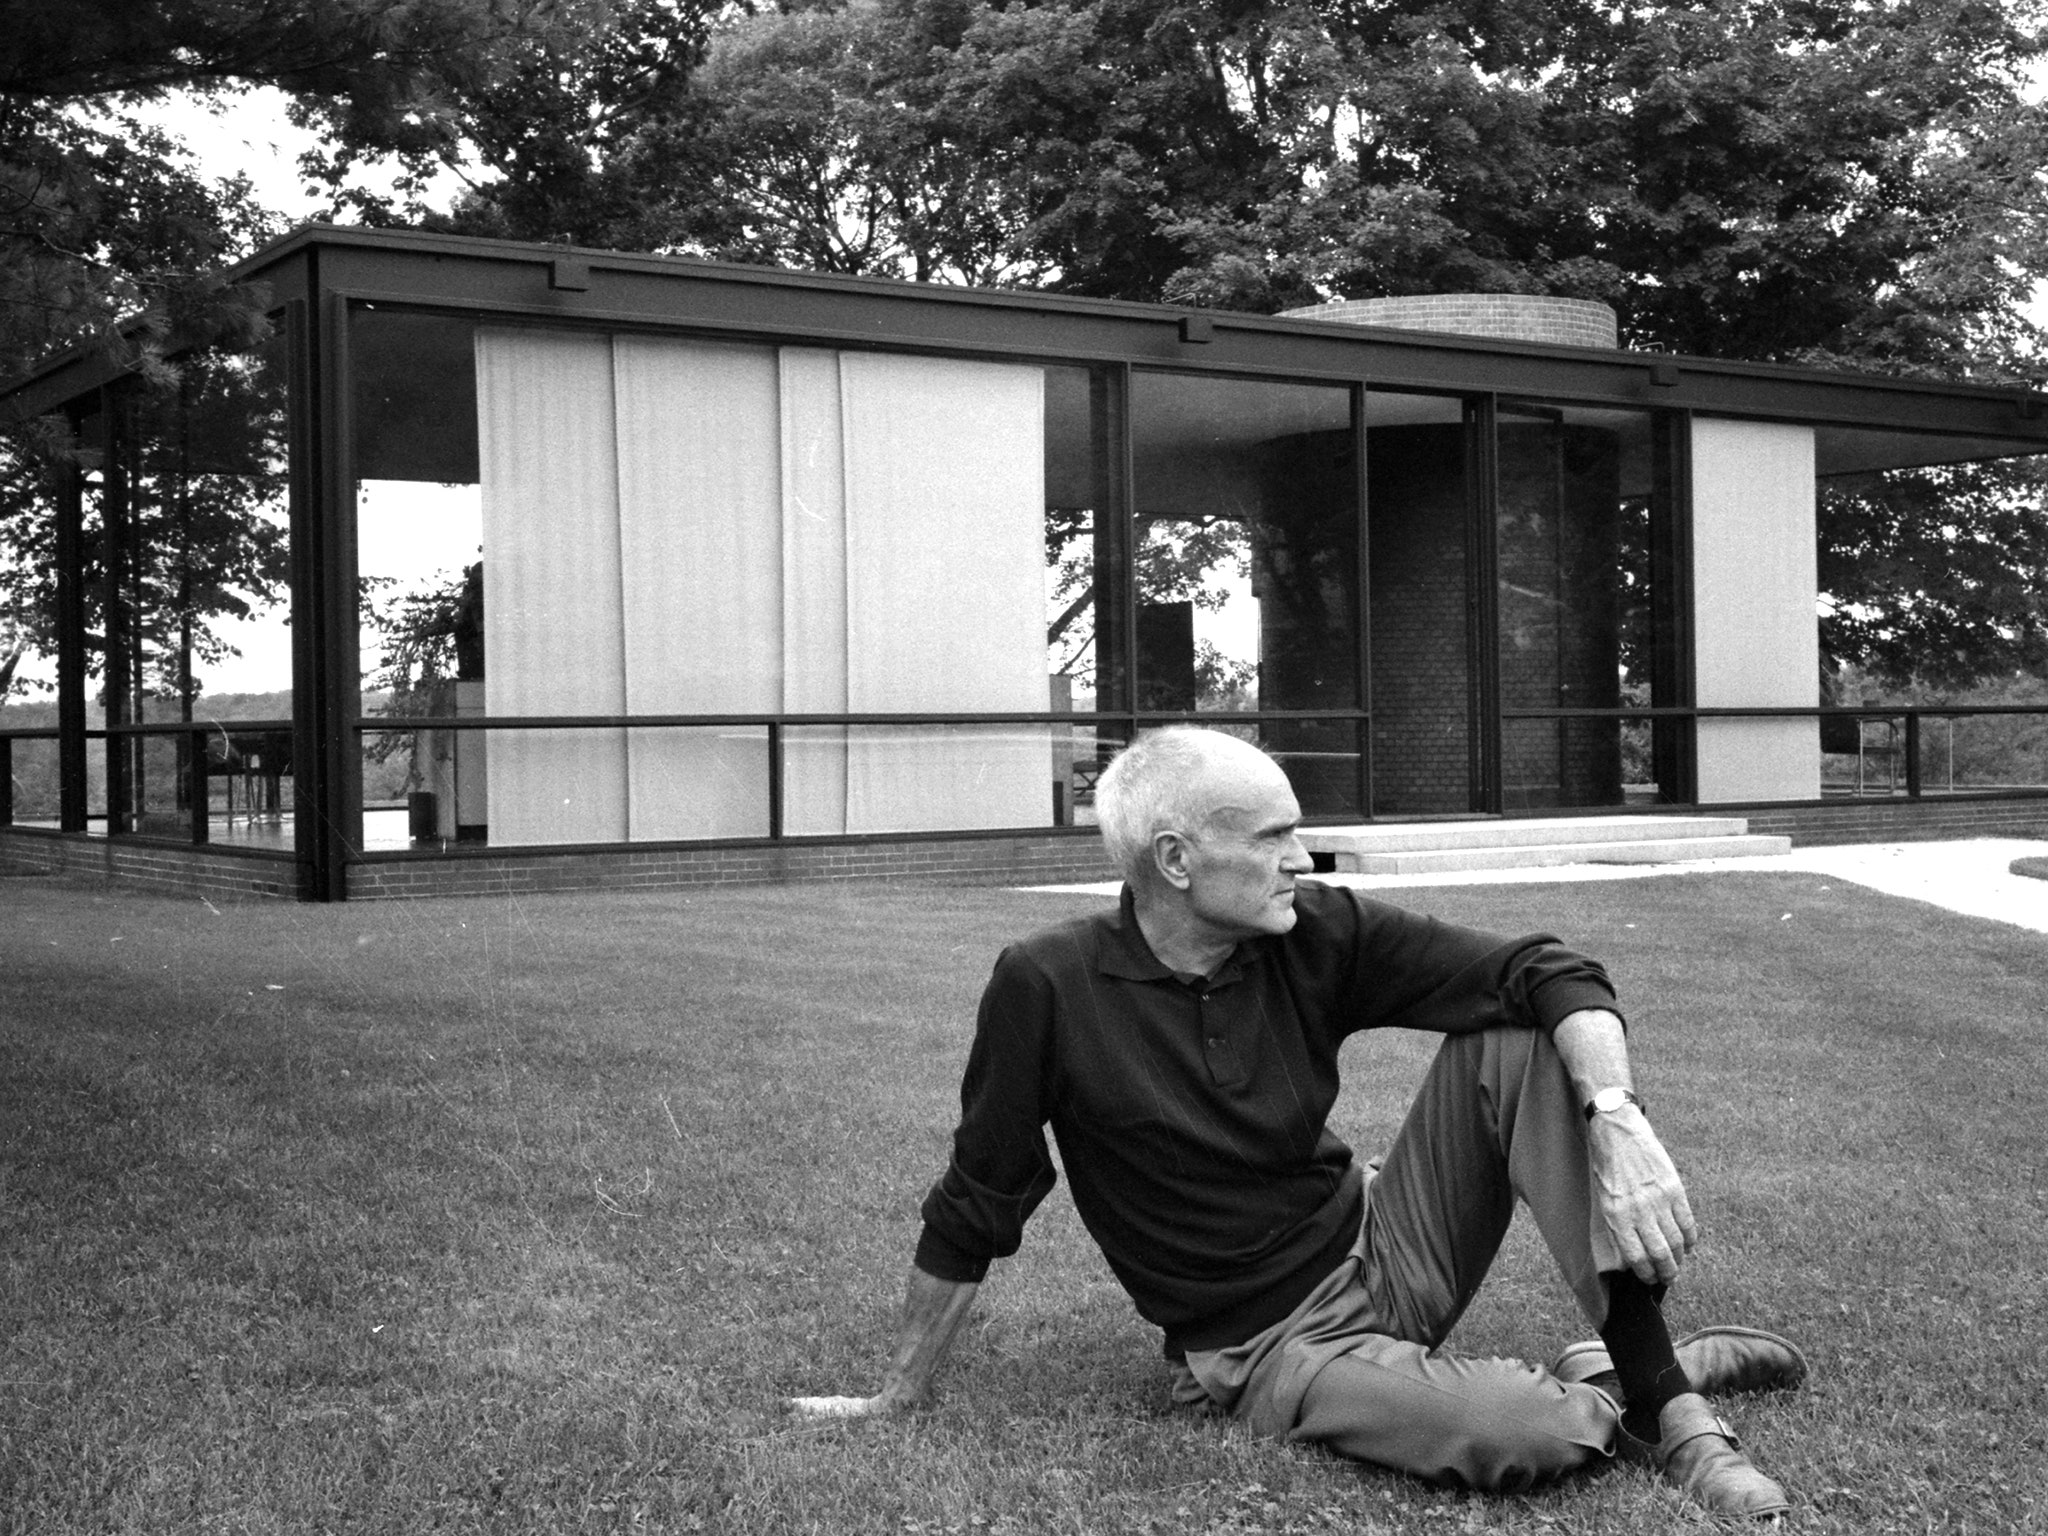 25 Famous quotes by famous architects - Sheet20